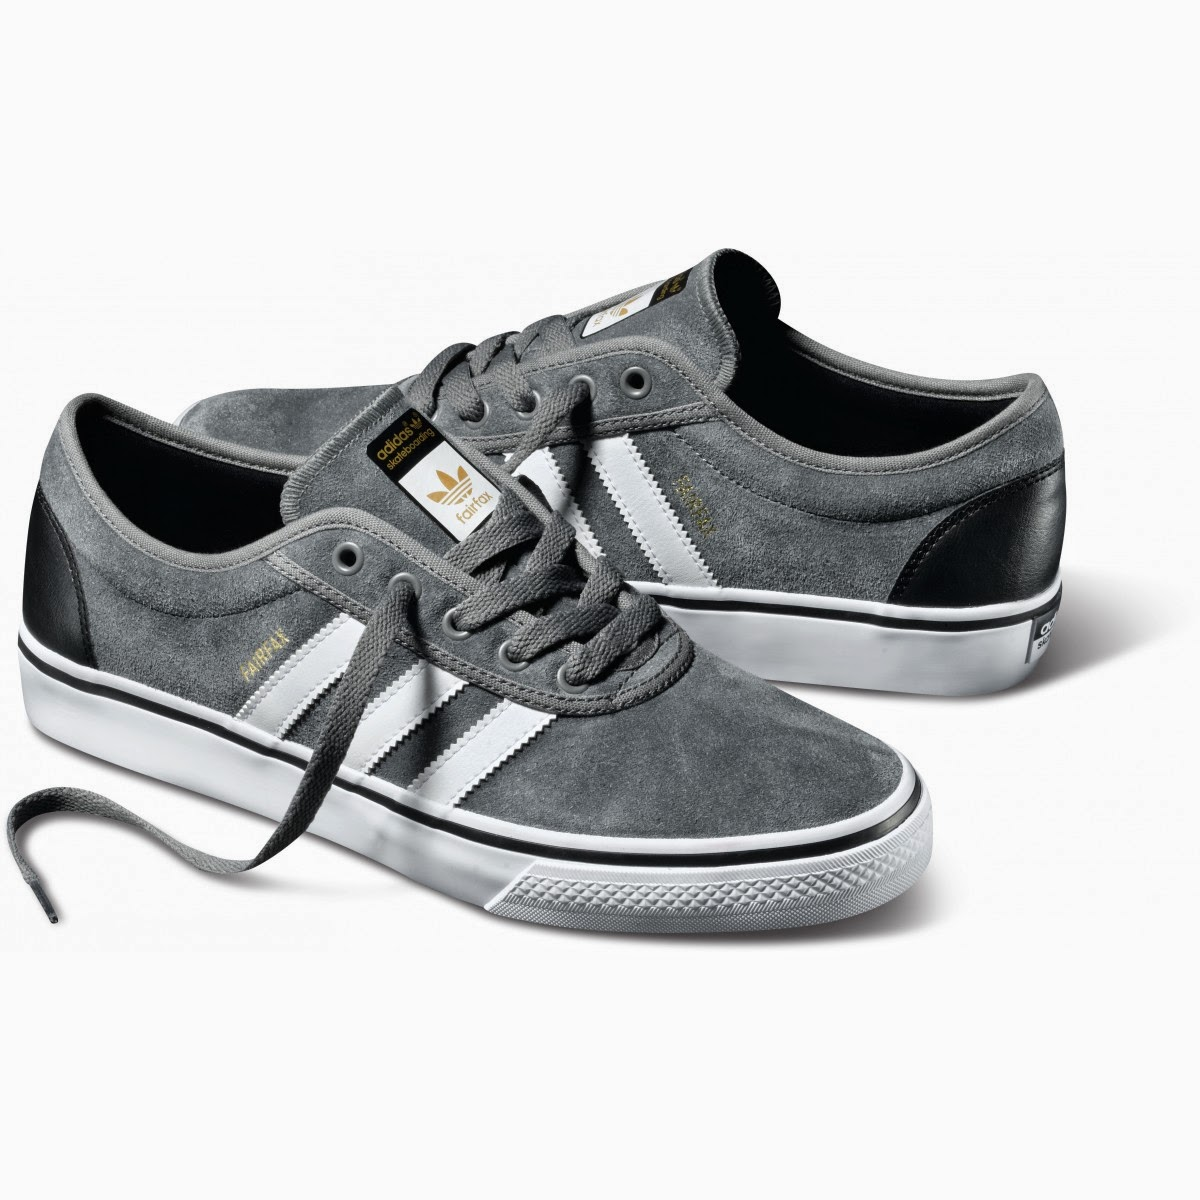 reputable site f5d35 13b32 adidas Skateboarding Adi Ease